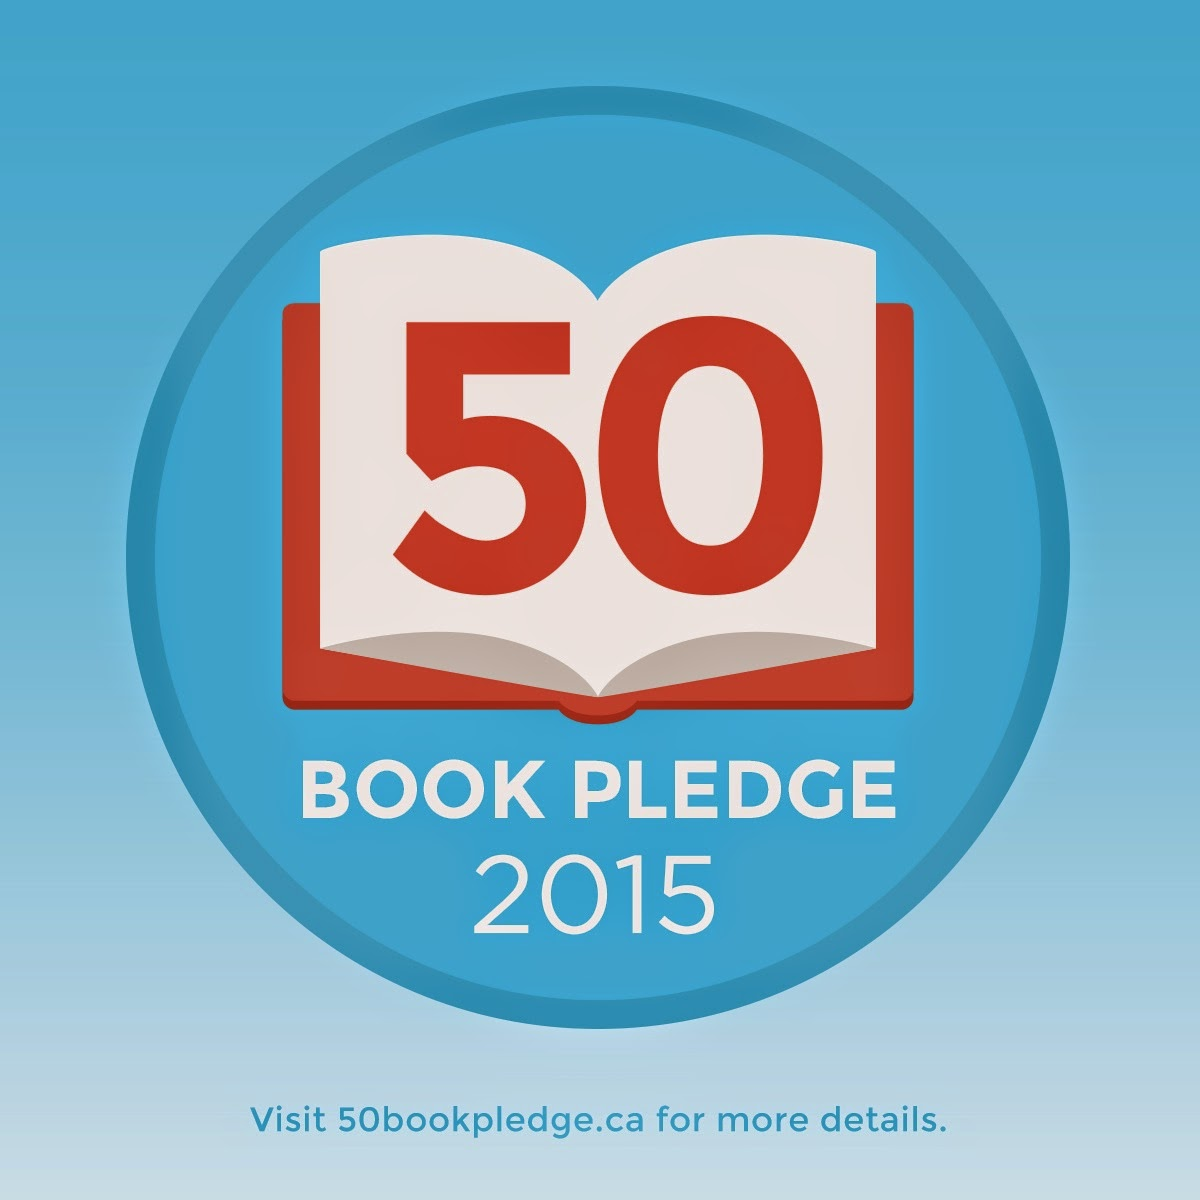 50 Book Pledge for 2015